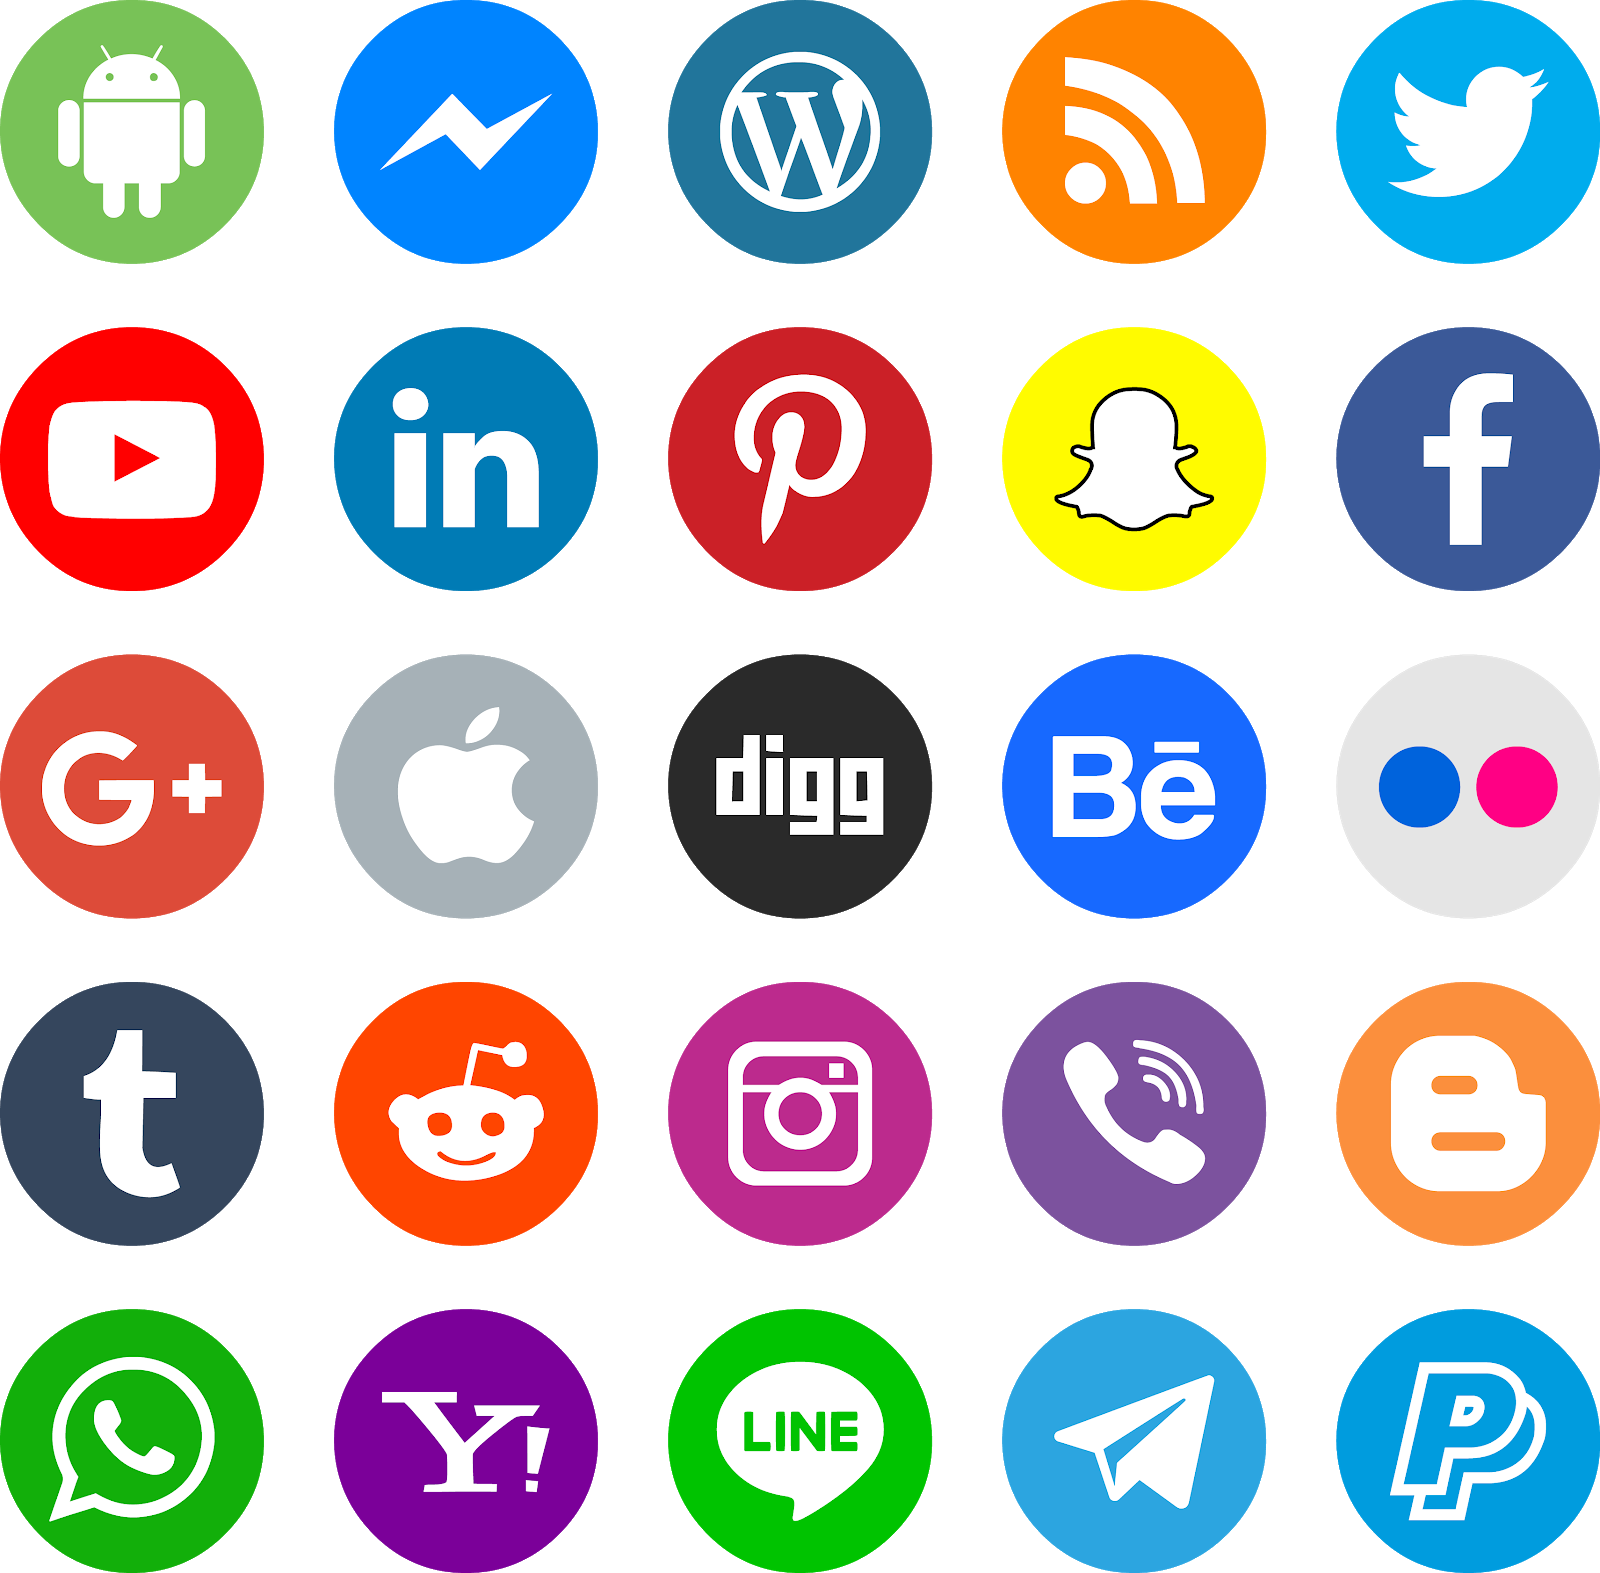 download icons social media color vector svg eps png psd ai.